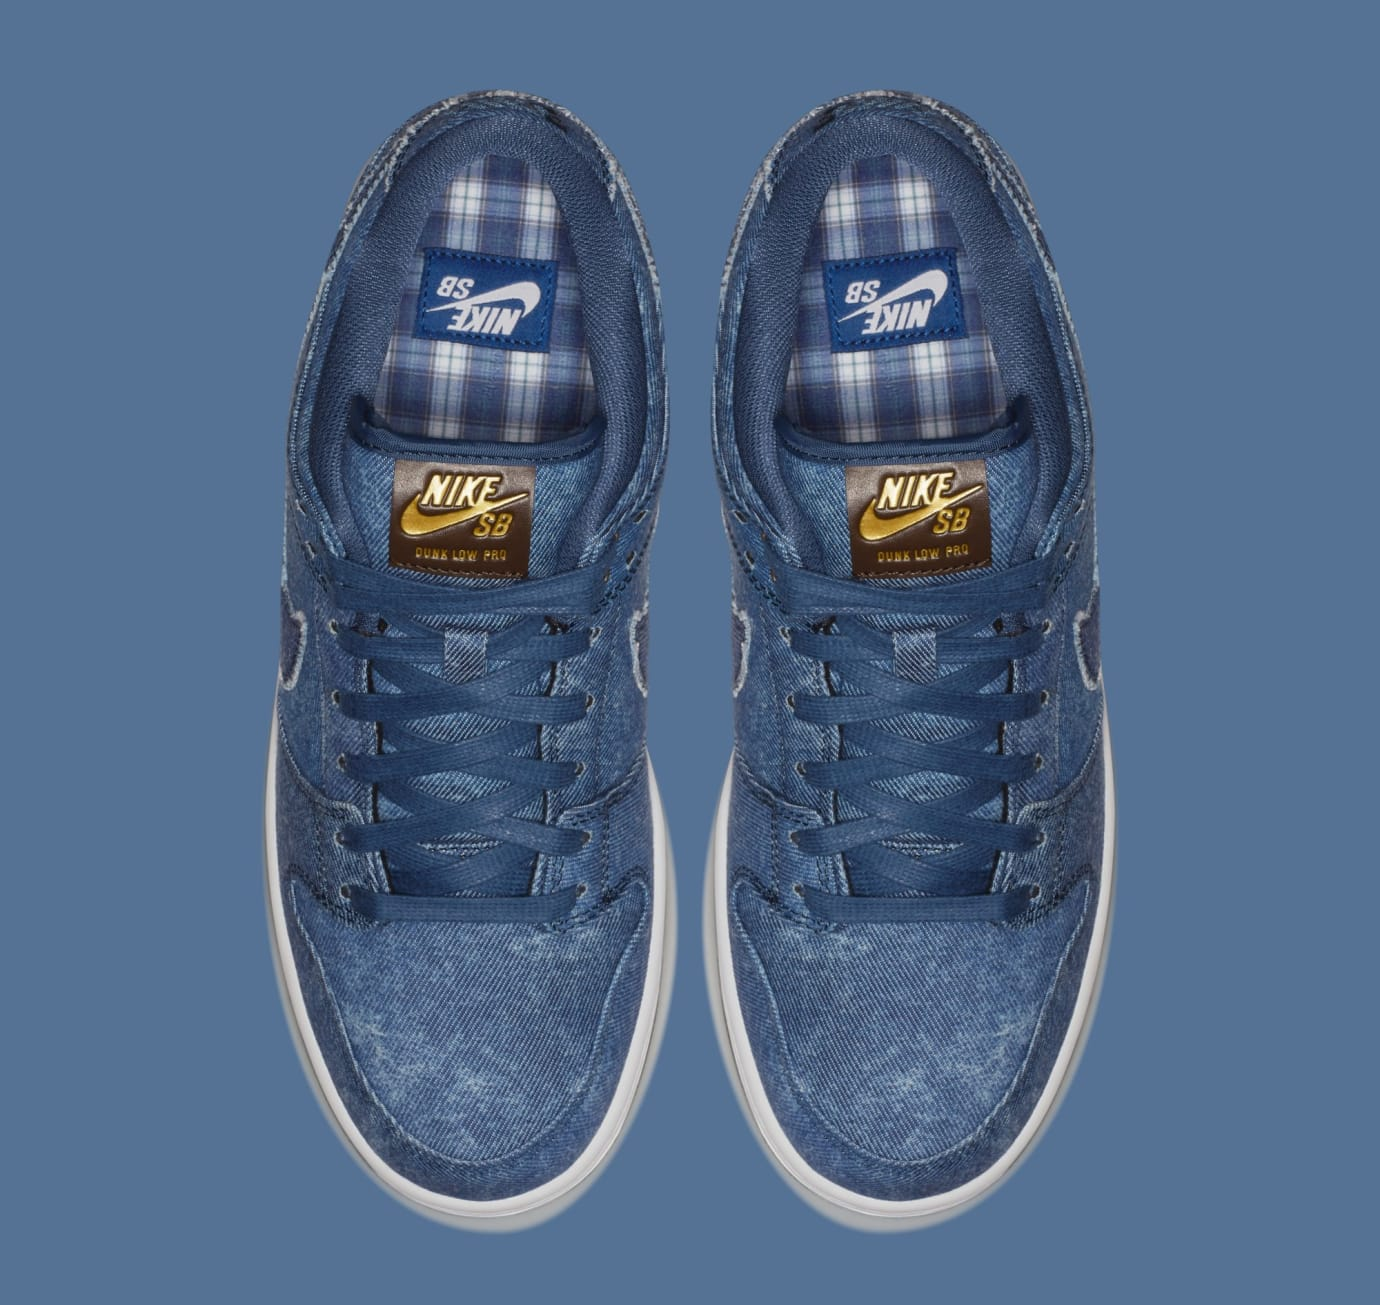 7d5333dee88 Image via Nike Nike SB Dunk Low  Biggie  883232-441 (Top)